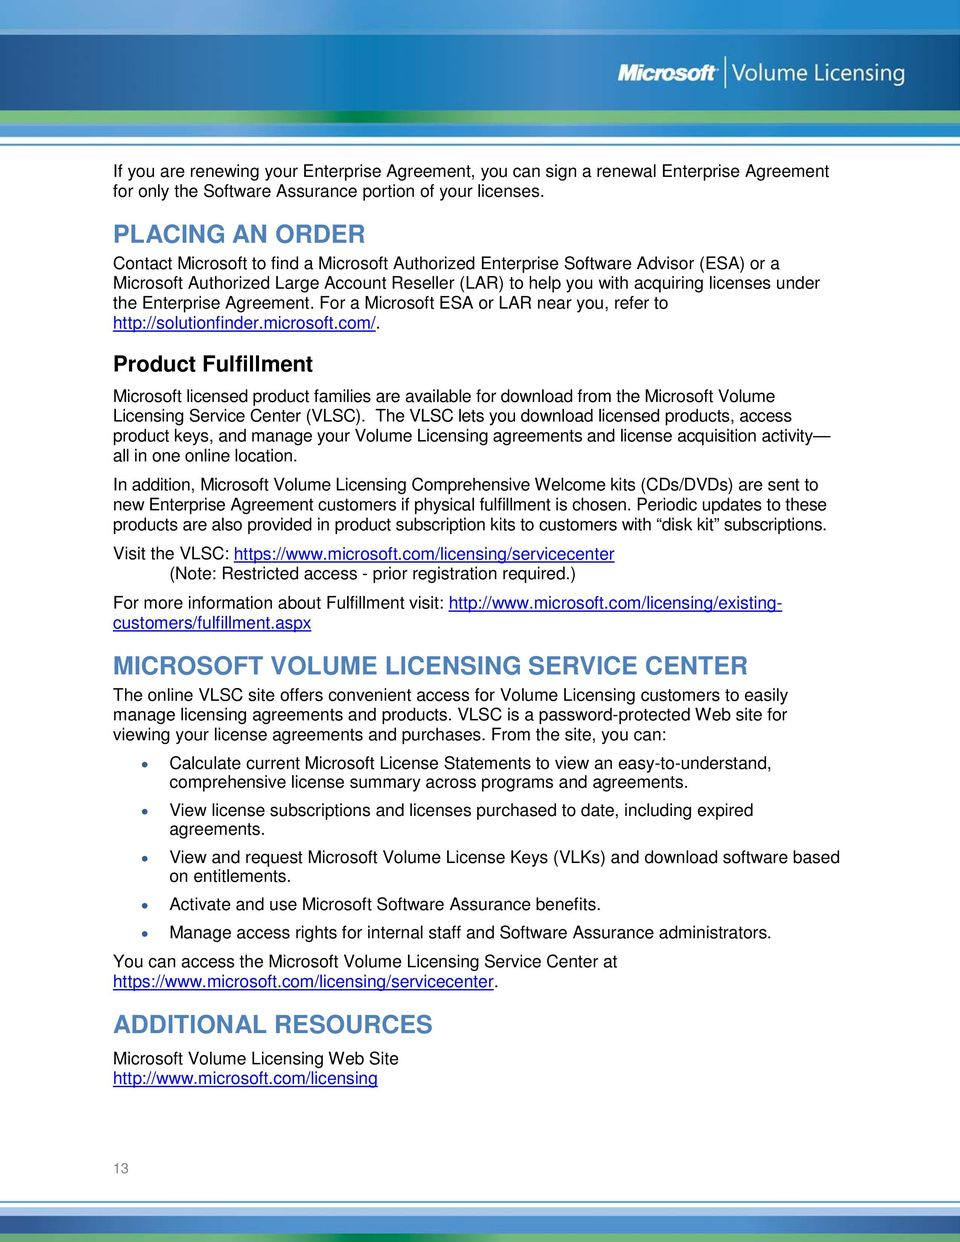 the Enterprise Agreement. For a Microsoft ESA or LAR near you, refer to http://solutionfinder.microsoft.com/.